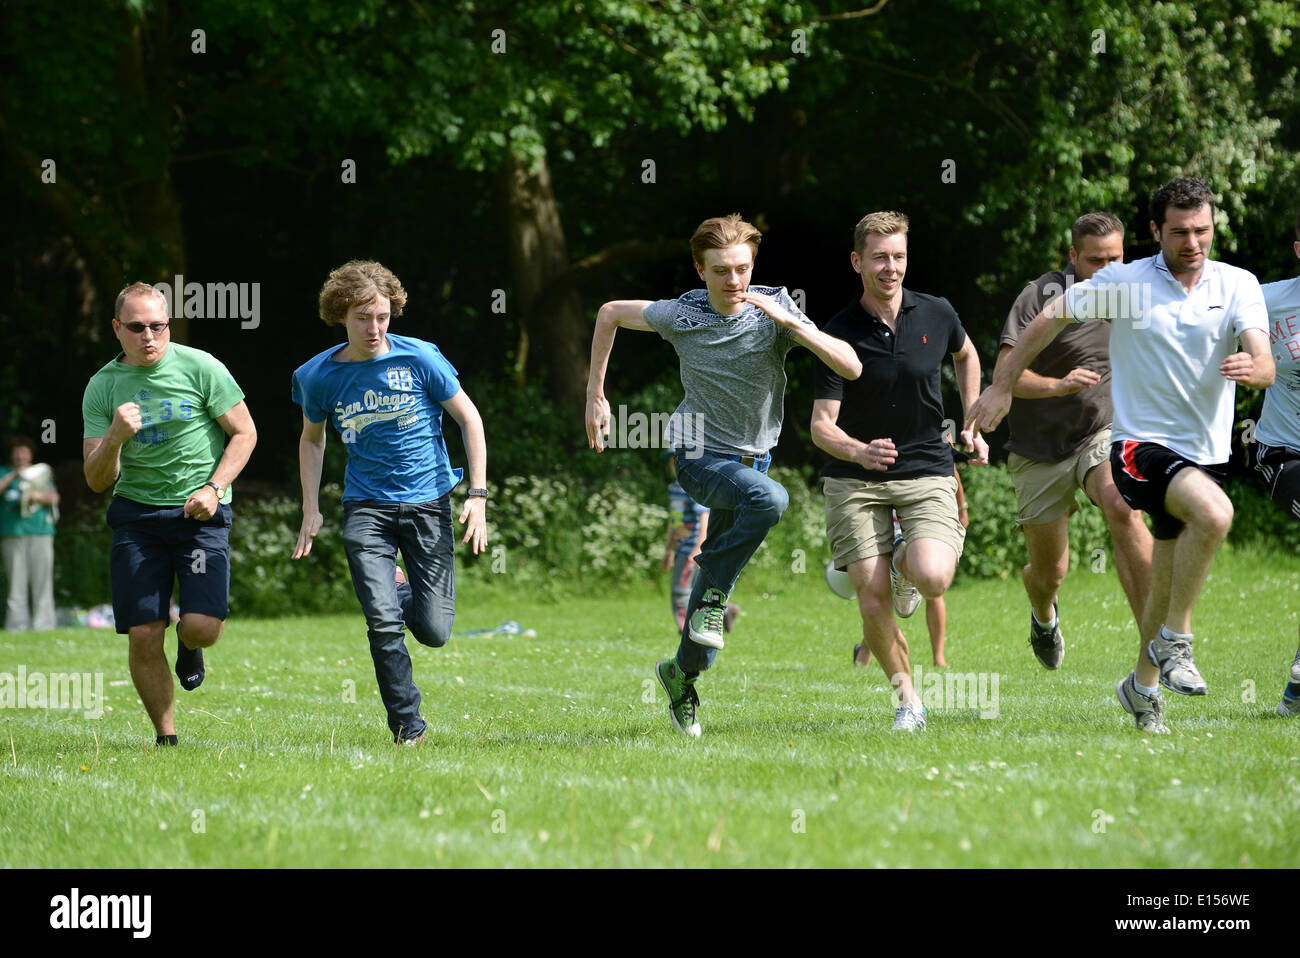 School sports day dads parents race 2014 - Stock Image